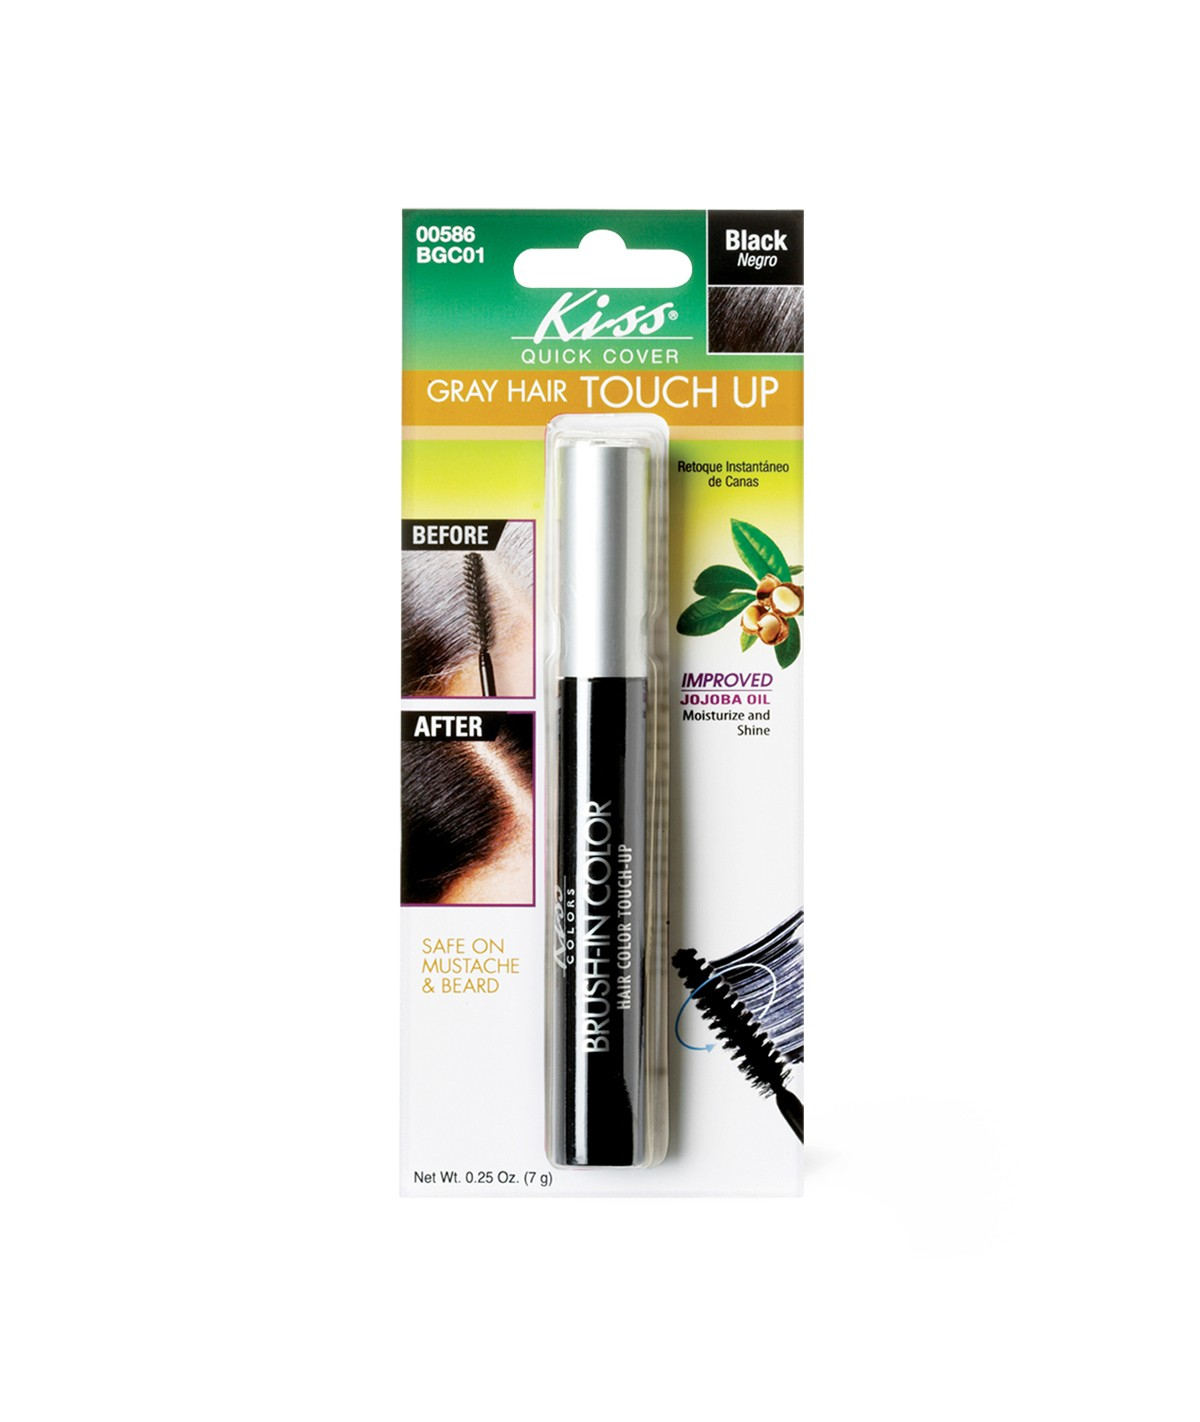 KISS-QUICK-COVER-GRAY-HAIR-TOUCH-UP-BRUSH-BGC-0-25OZ-TEMPORARY-COLOR-DYE